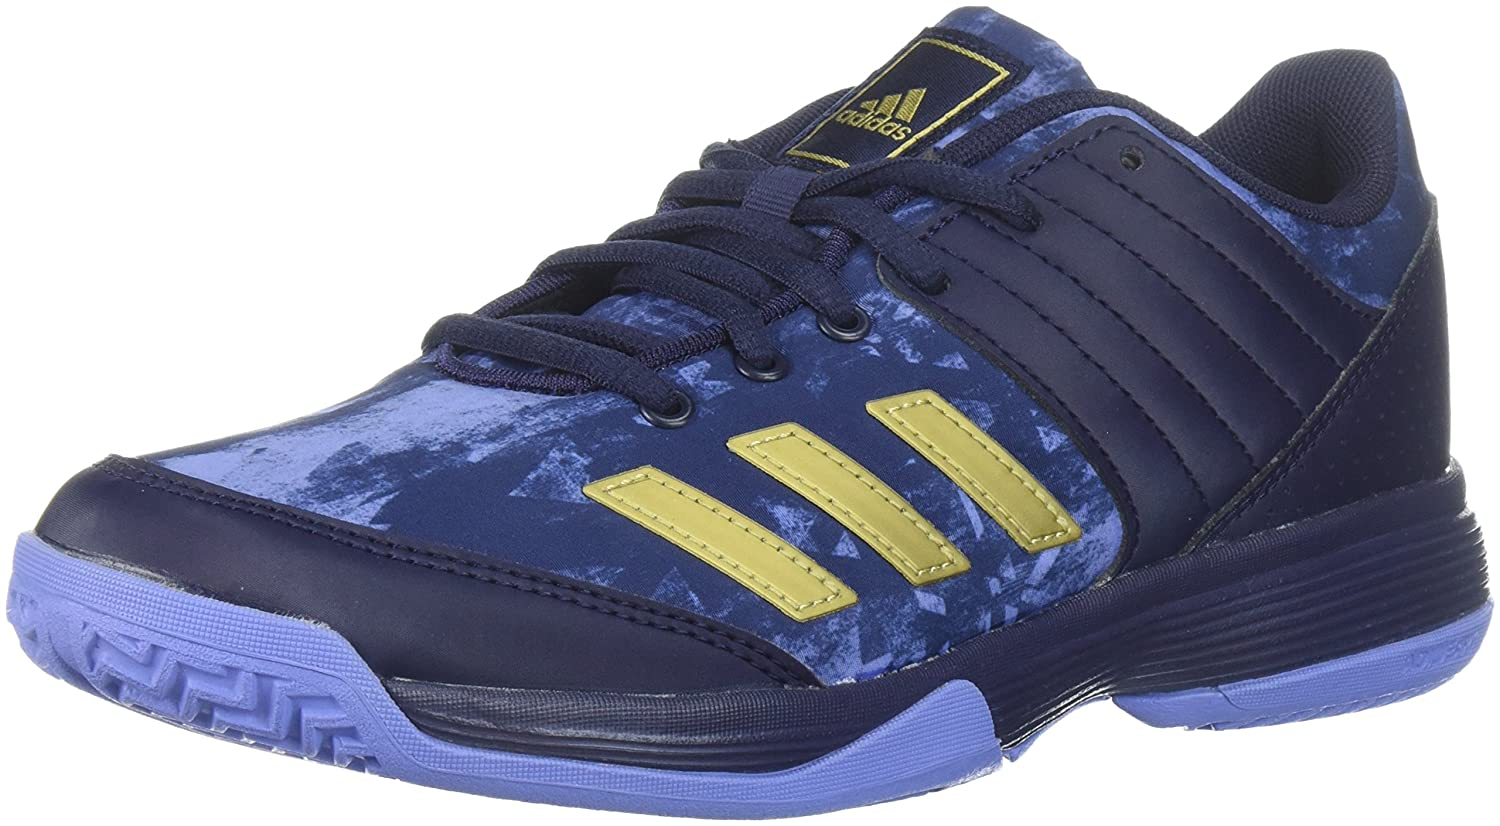 adidas Women's Ligra 5 W Tennis Shoe B07234L1MZ 7 B(M) US|Noble Ink/Metallic Gold/Chalk Purple